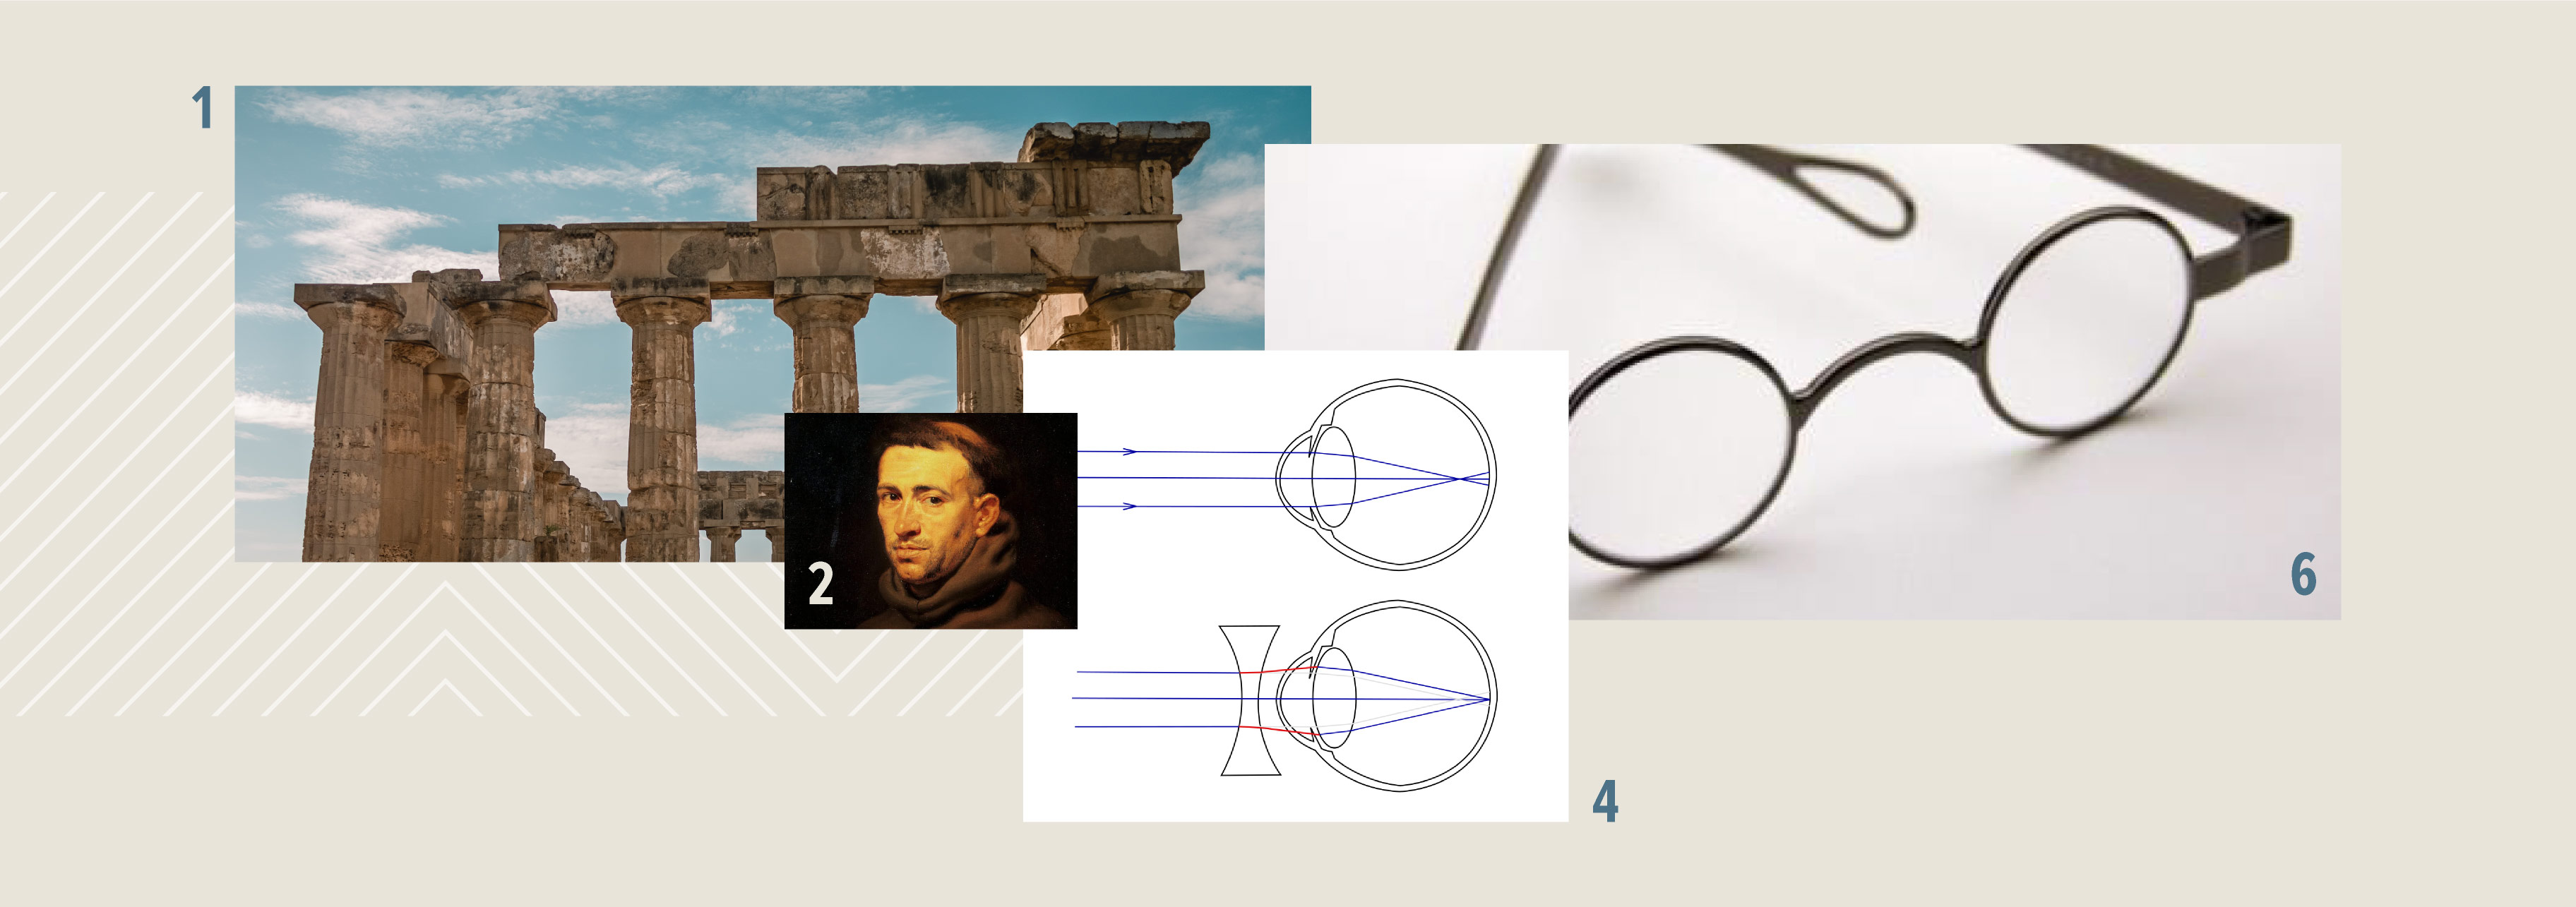 Collage of photos of old greek architecture, a Franciscan Monk painting, a graphic of myopia and glasses with rigid temples.